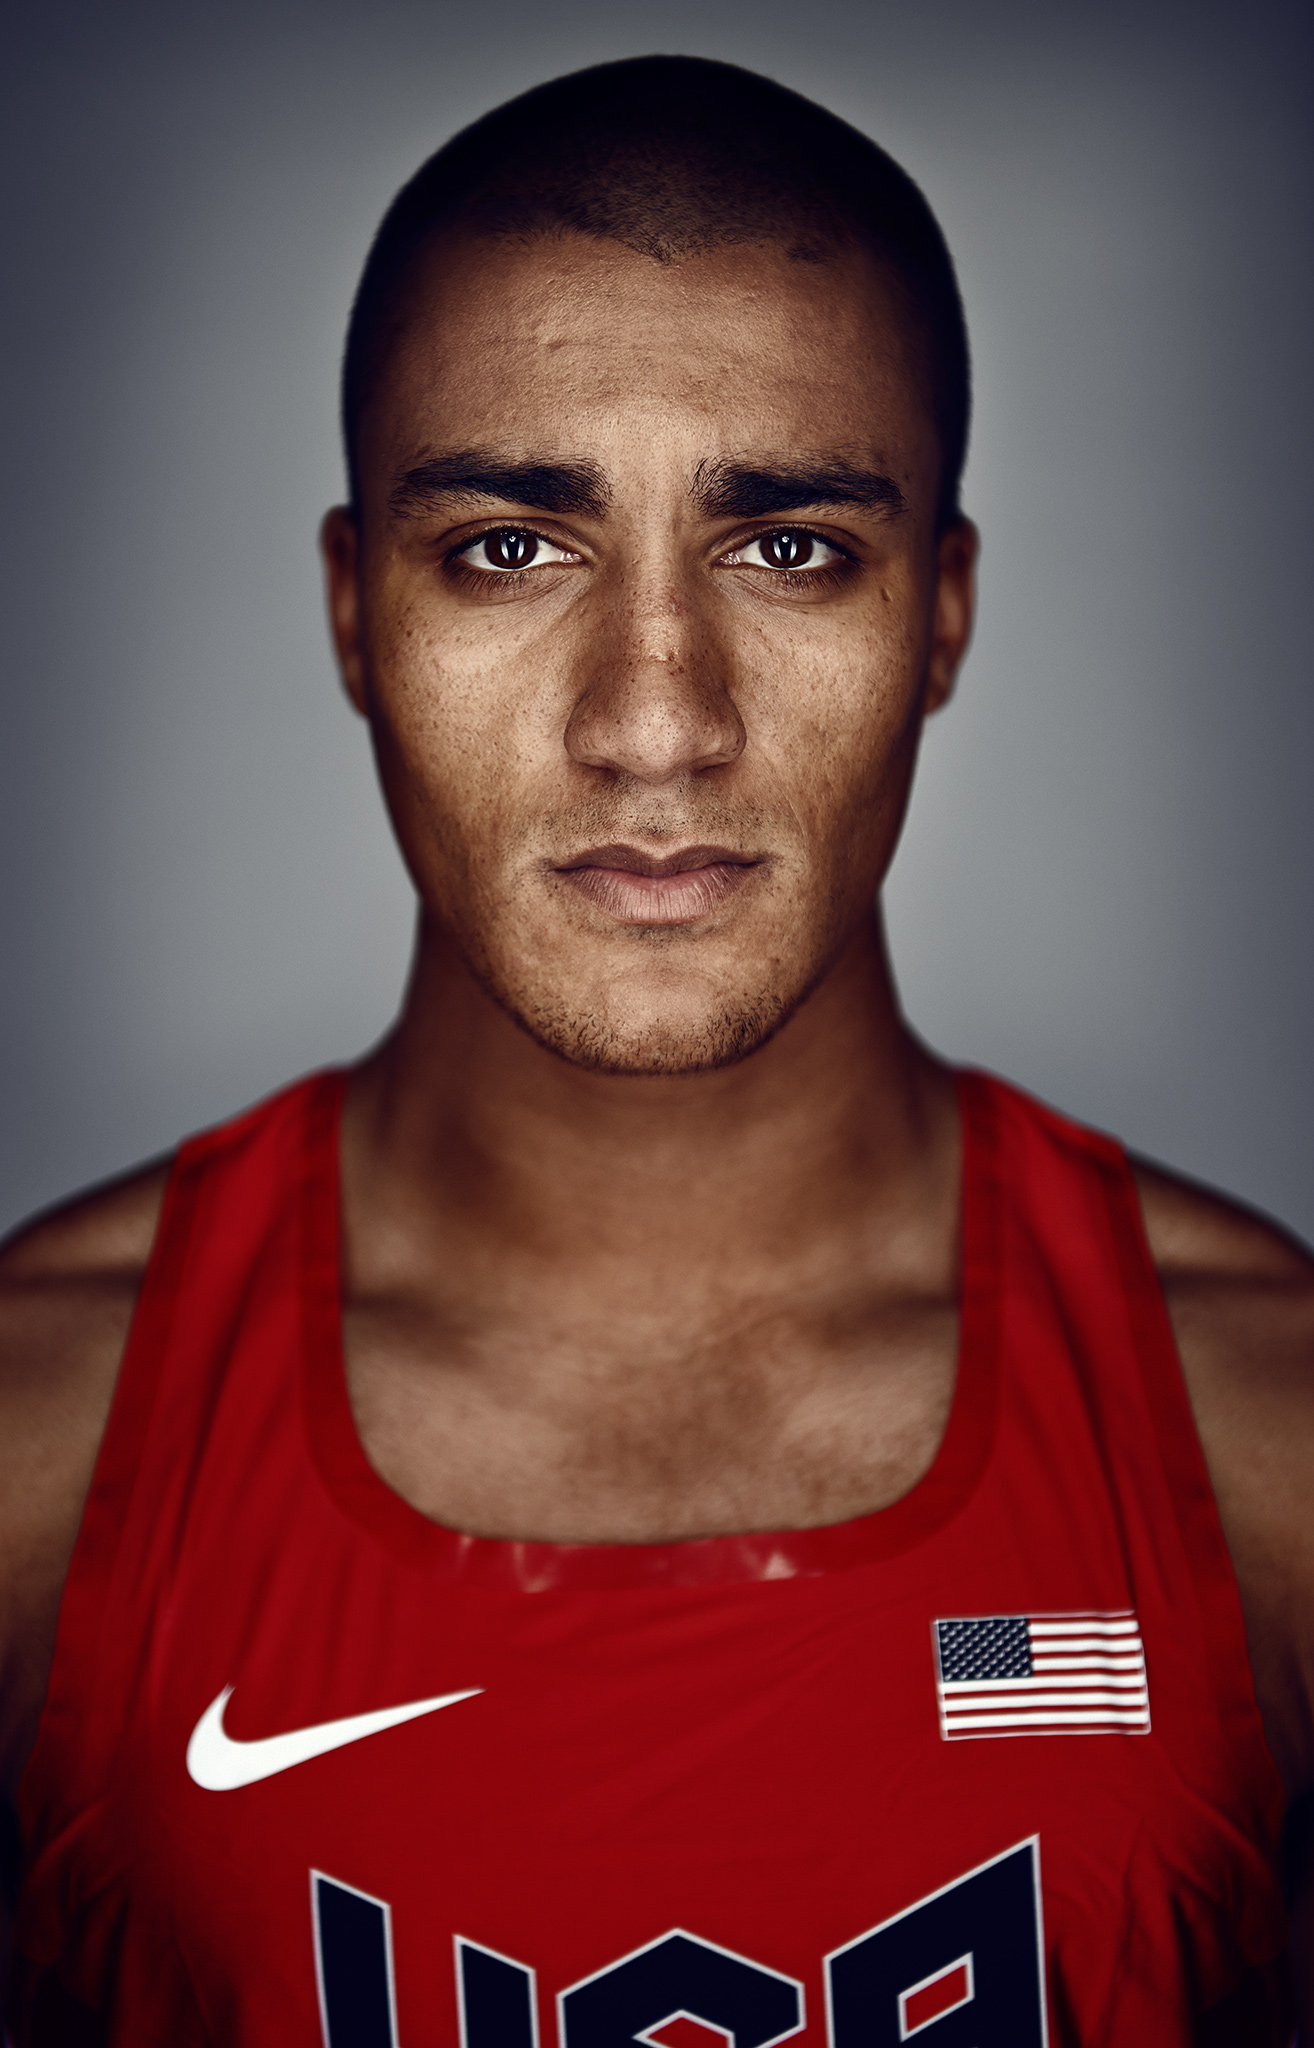 Portrait of Ashton Eaton, World Record Holder | Zach Ancell Photography